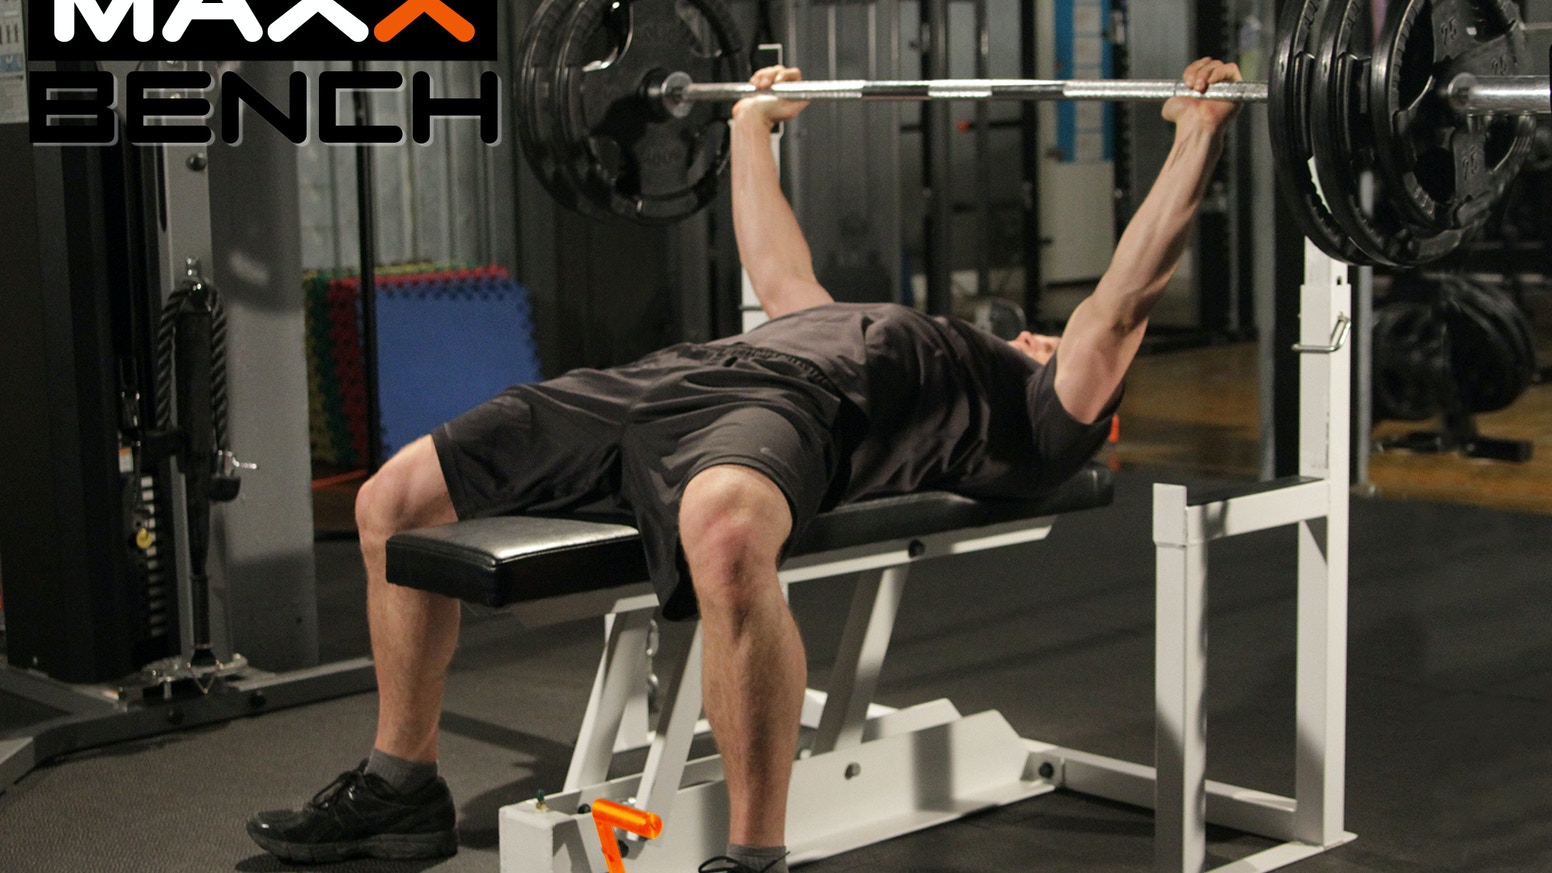 Maxx Bench First Ever Gravity Release Press By Dave See A Robot Workout